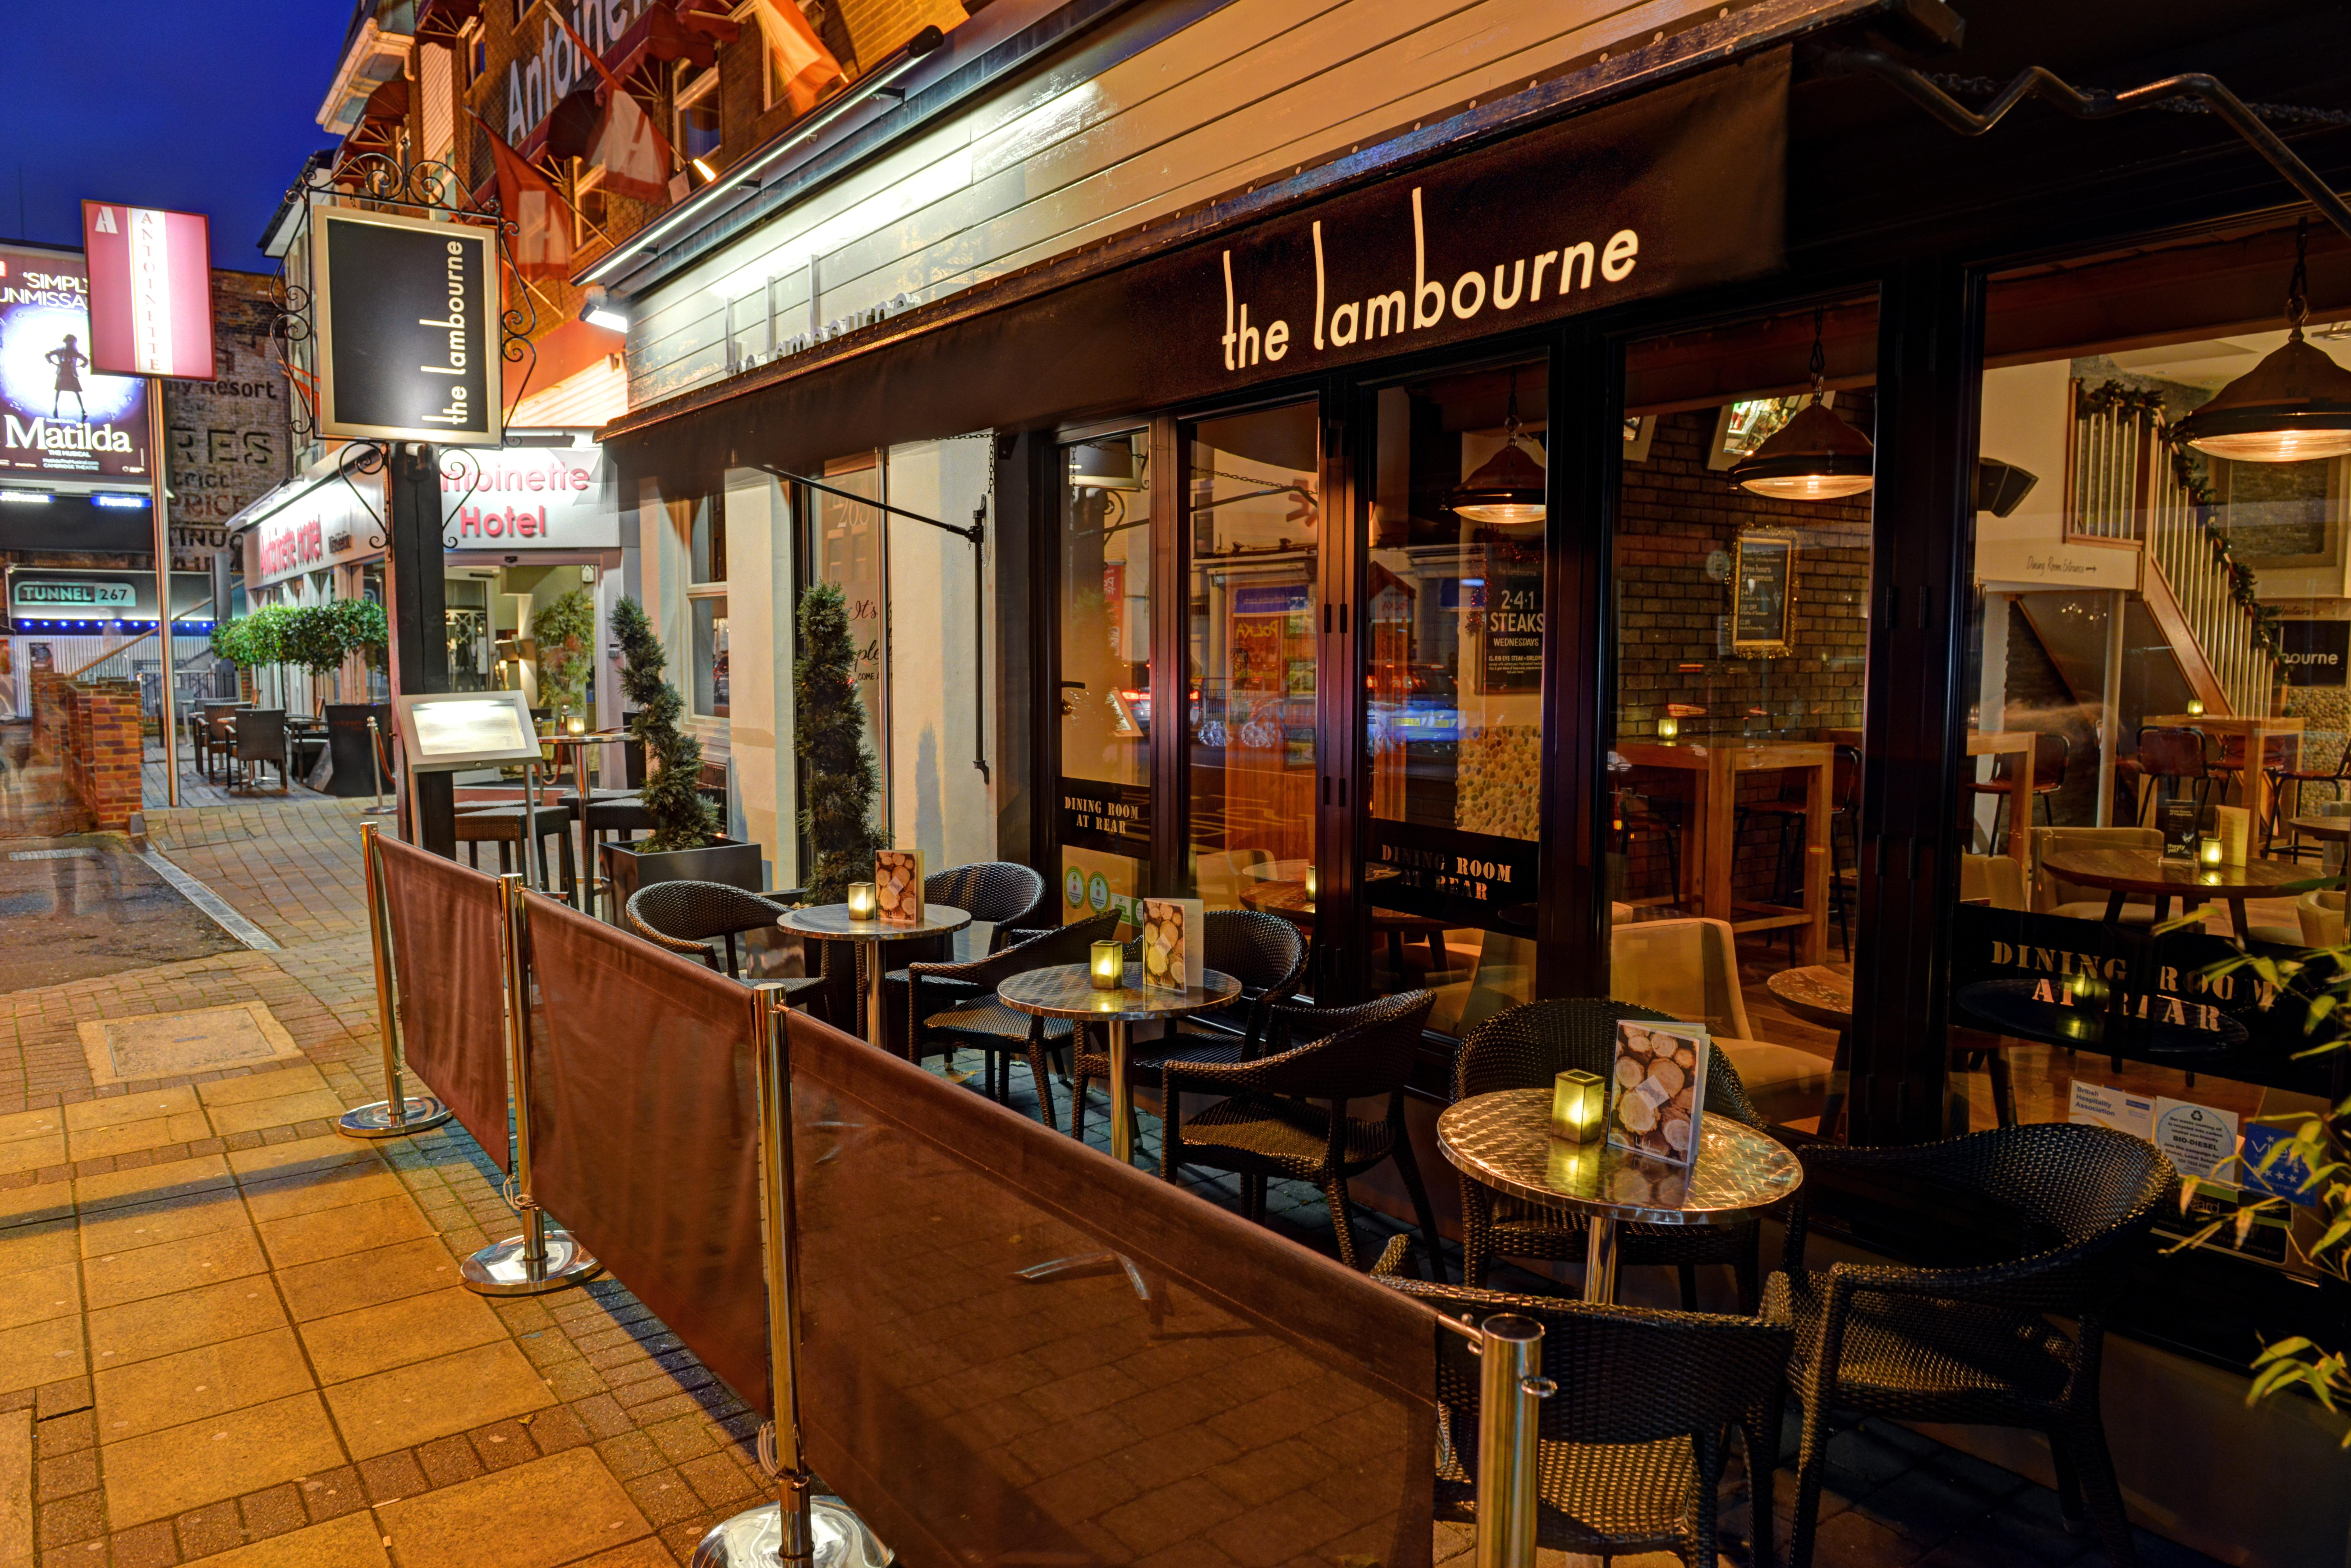 The Lambourne - London